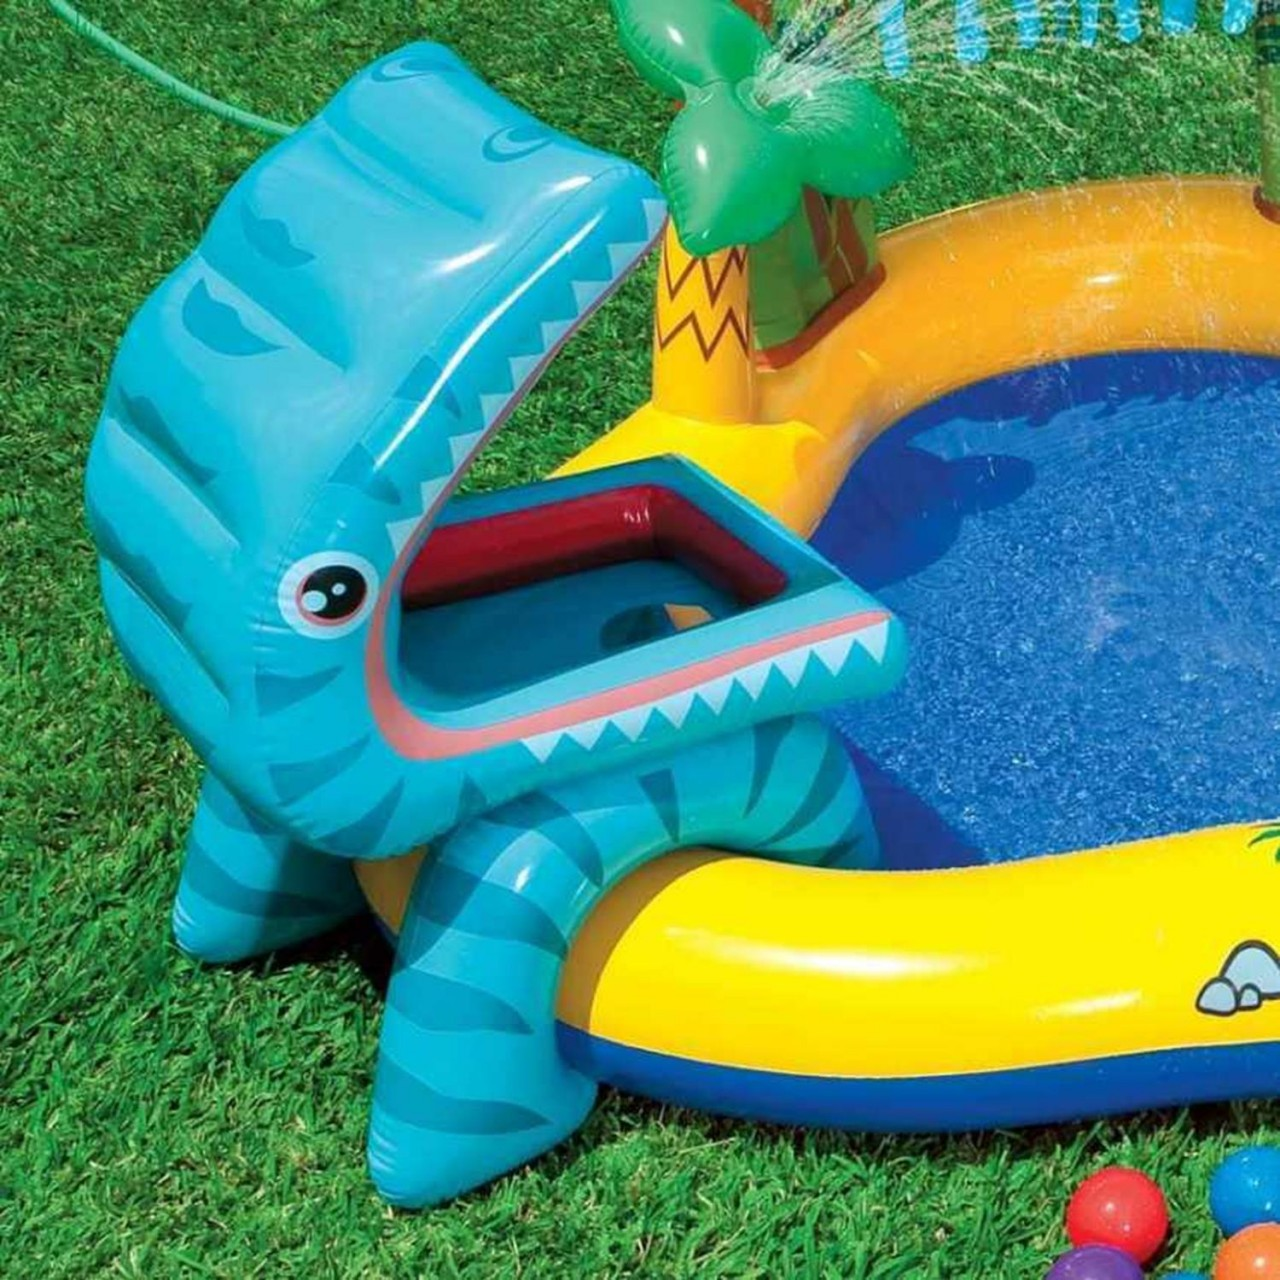 Intex Play Center Dino Planschbecken Pool Wasserrutsche Wasserfall aufblasbar